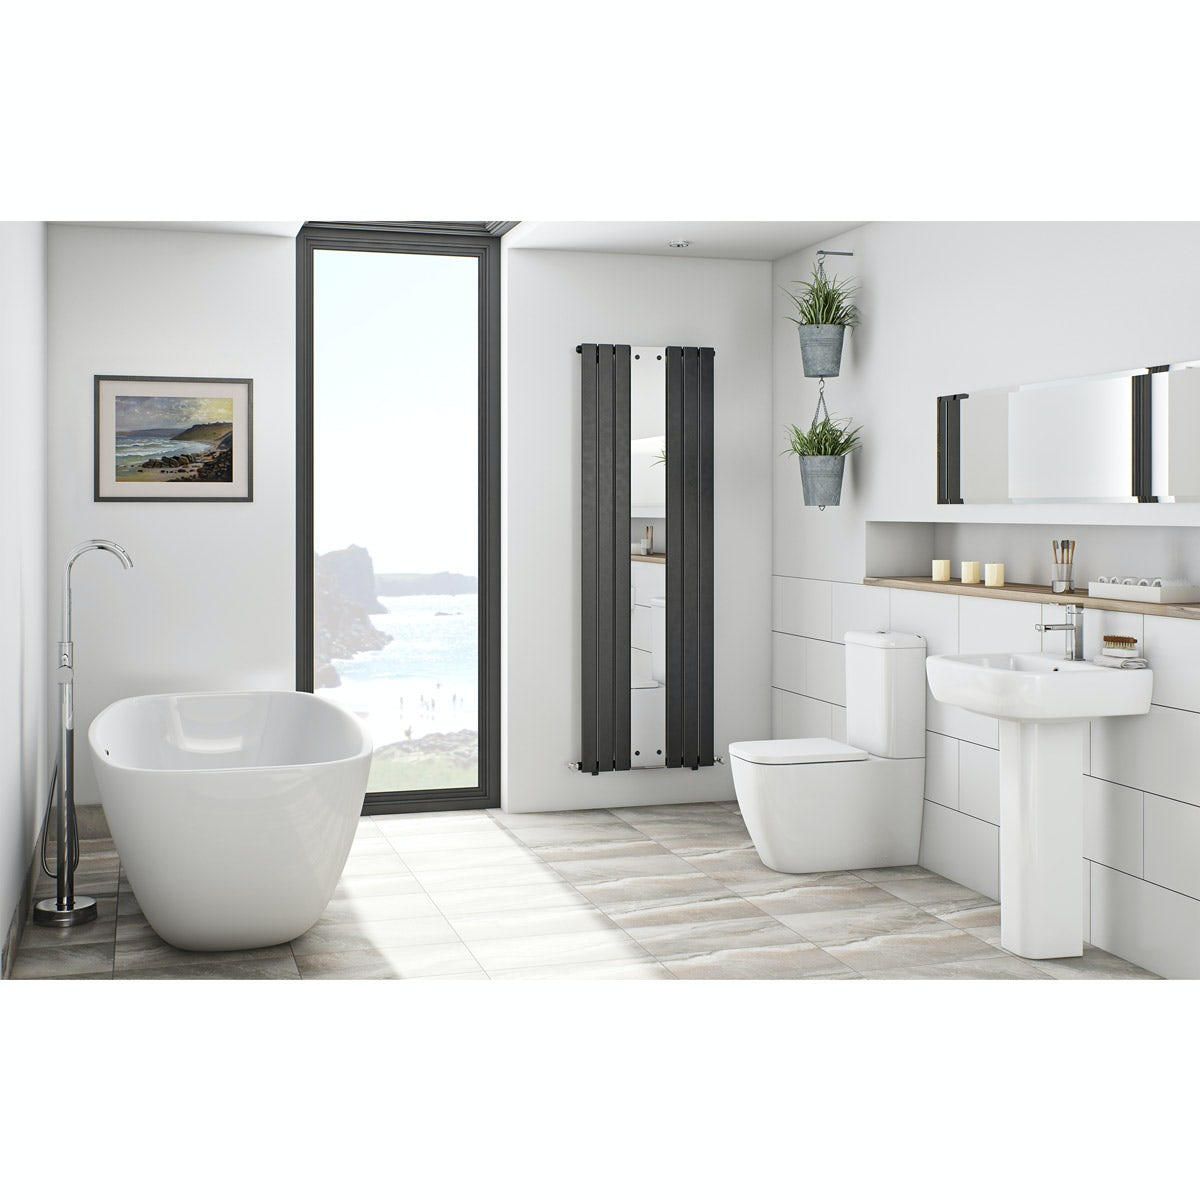 Mode ellis bathroom suite with freestanding bath for Bathrooms b q suites